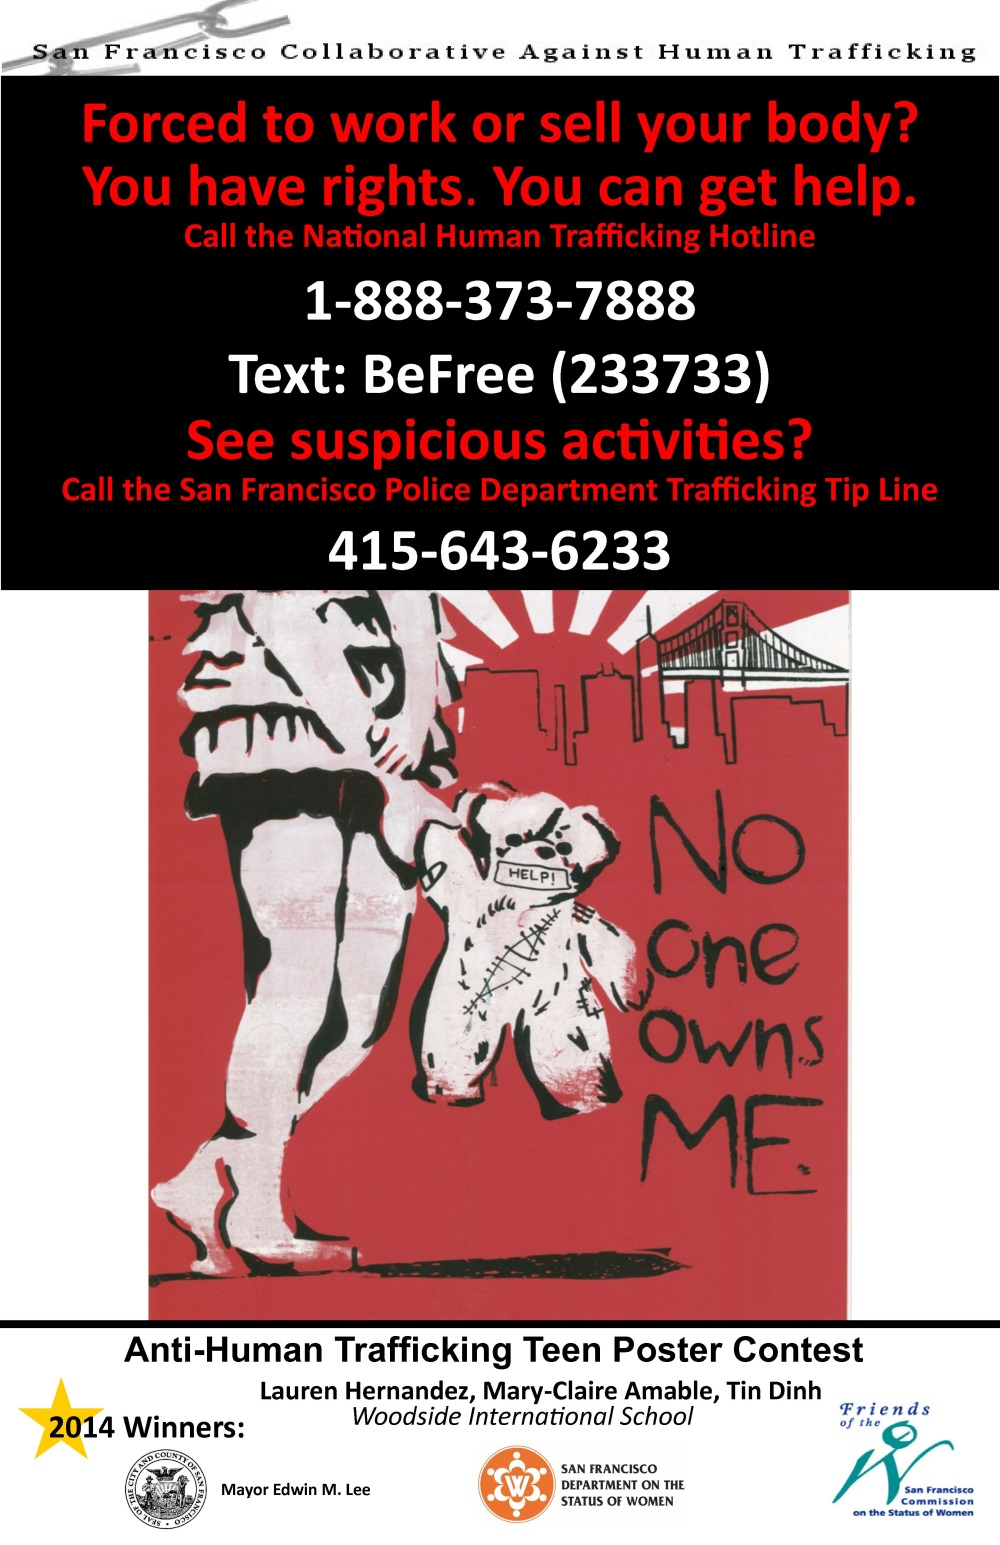 SFCAHT Anti-Human Trafficking Teen Poster 2014